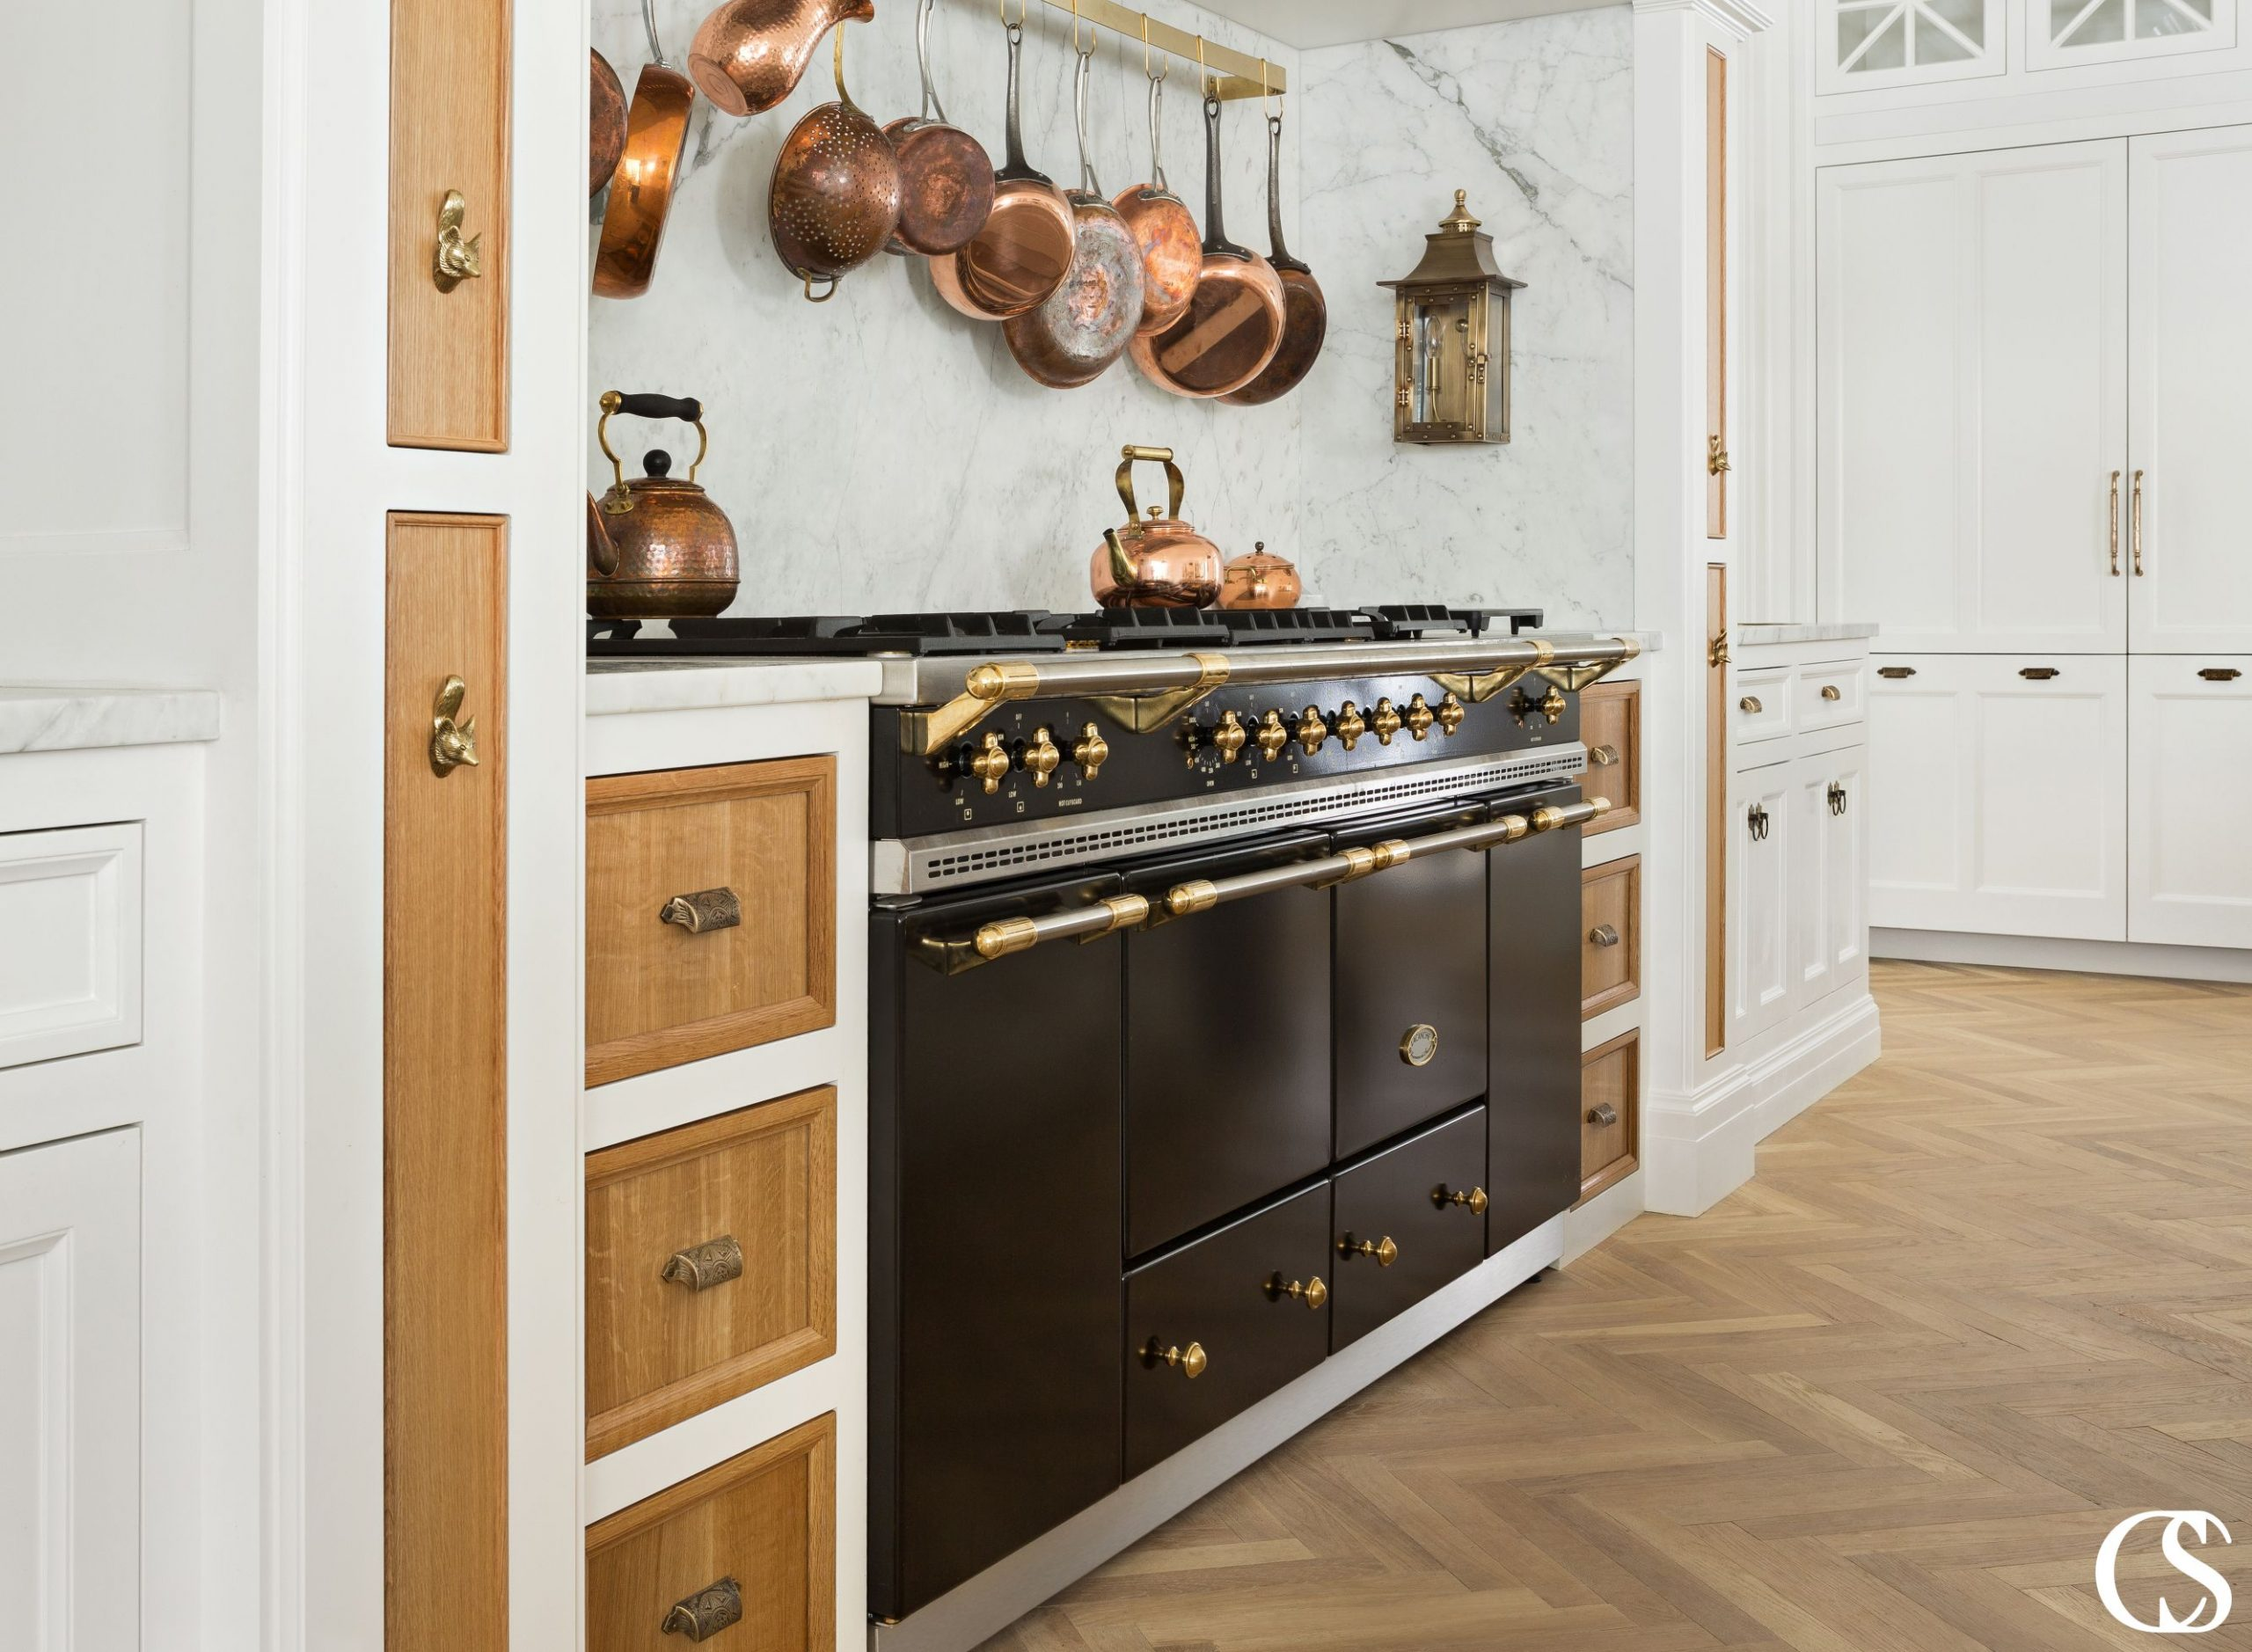 What makes the best custom kitchen cabinetry design? Is it material? Color? Hardware? We know it's a combination of all those things combined in the overall thoughtful design that will create usable workspace, storage, as well as beauty in your kitchen.